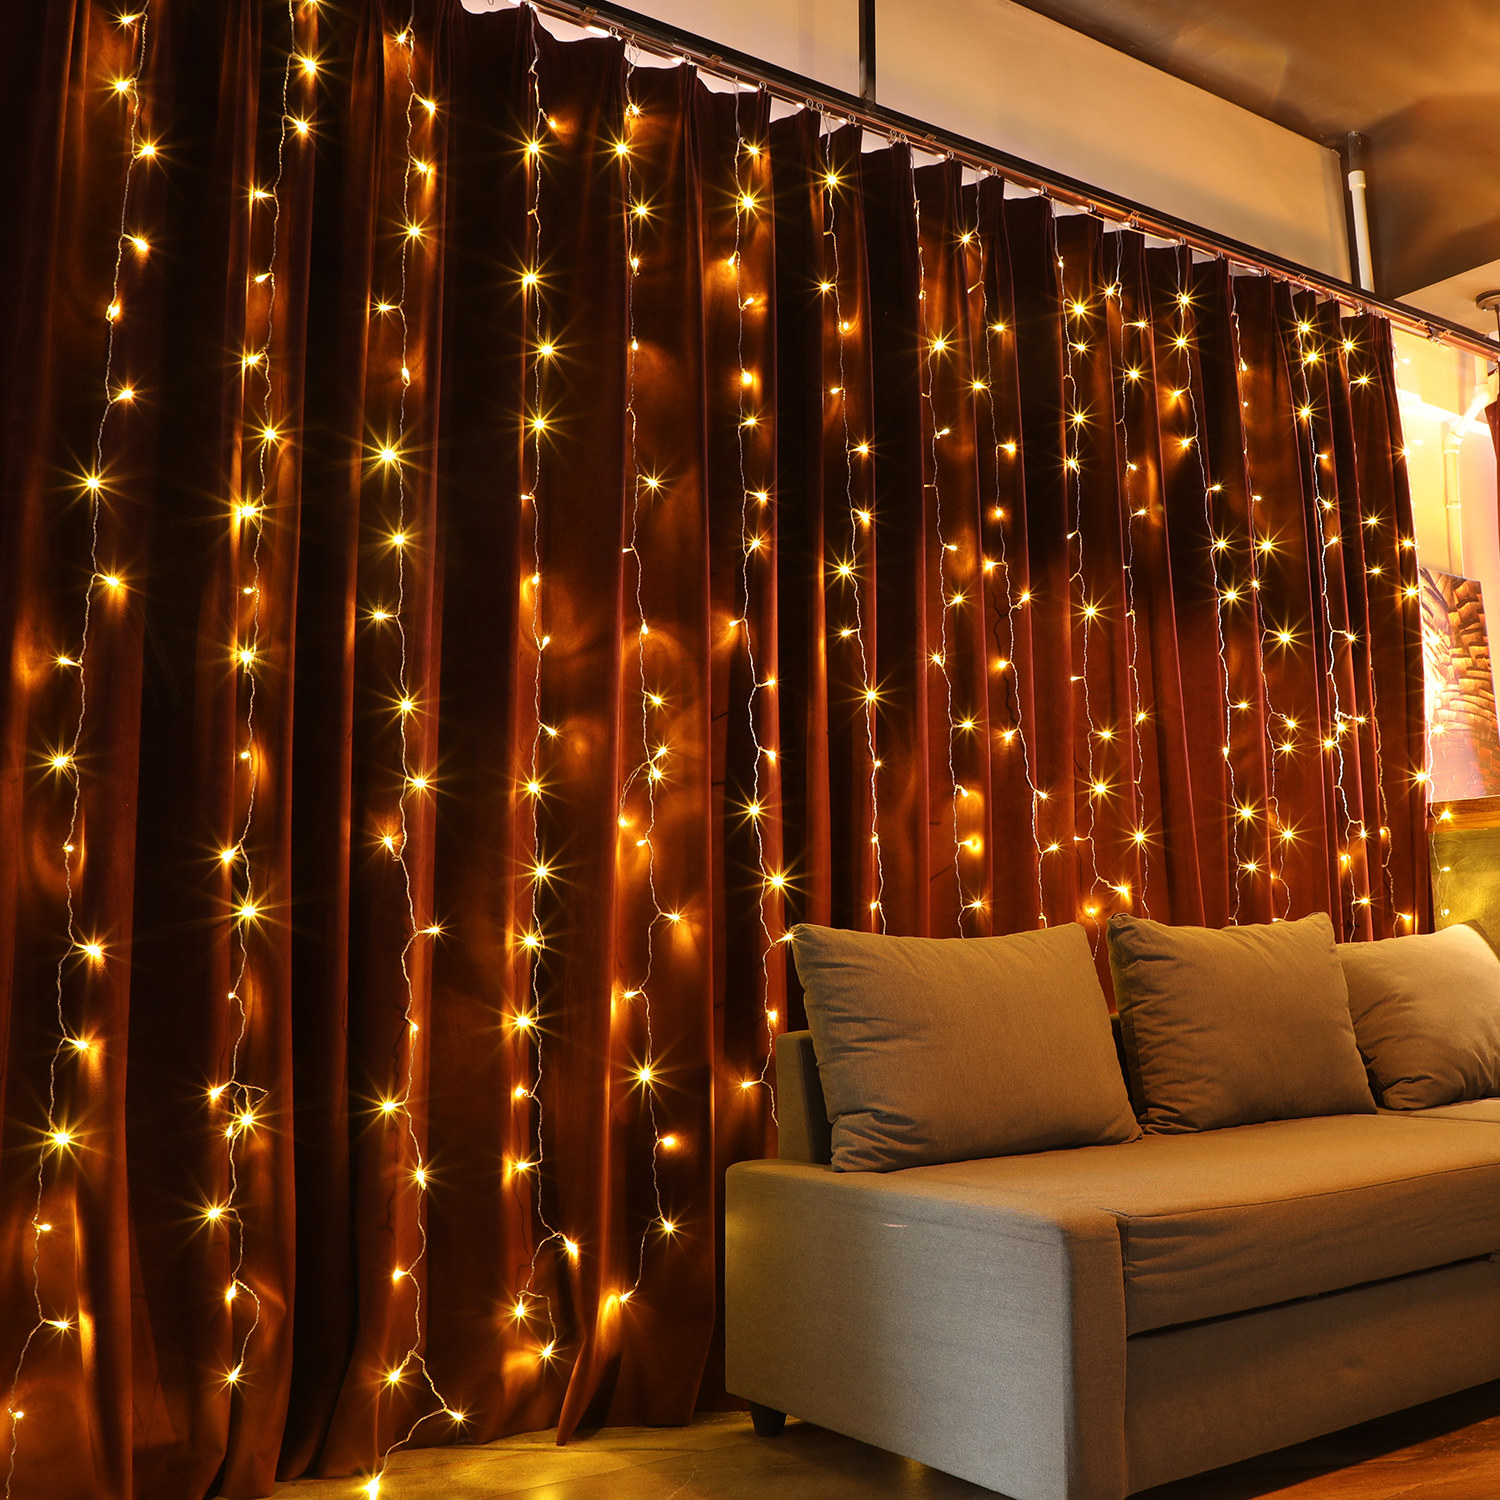 the lights hung on the curtains behind a couch